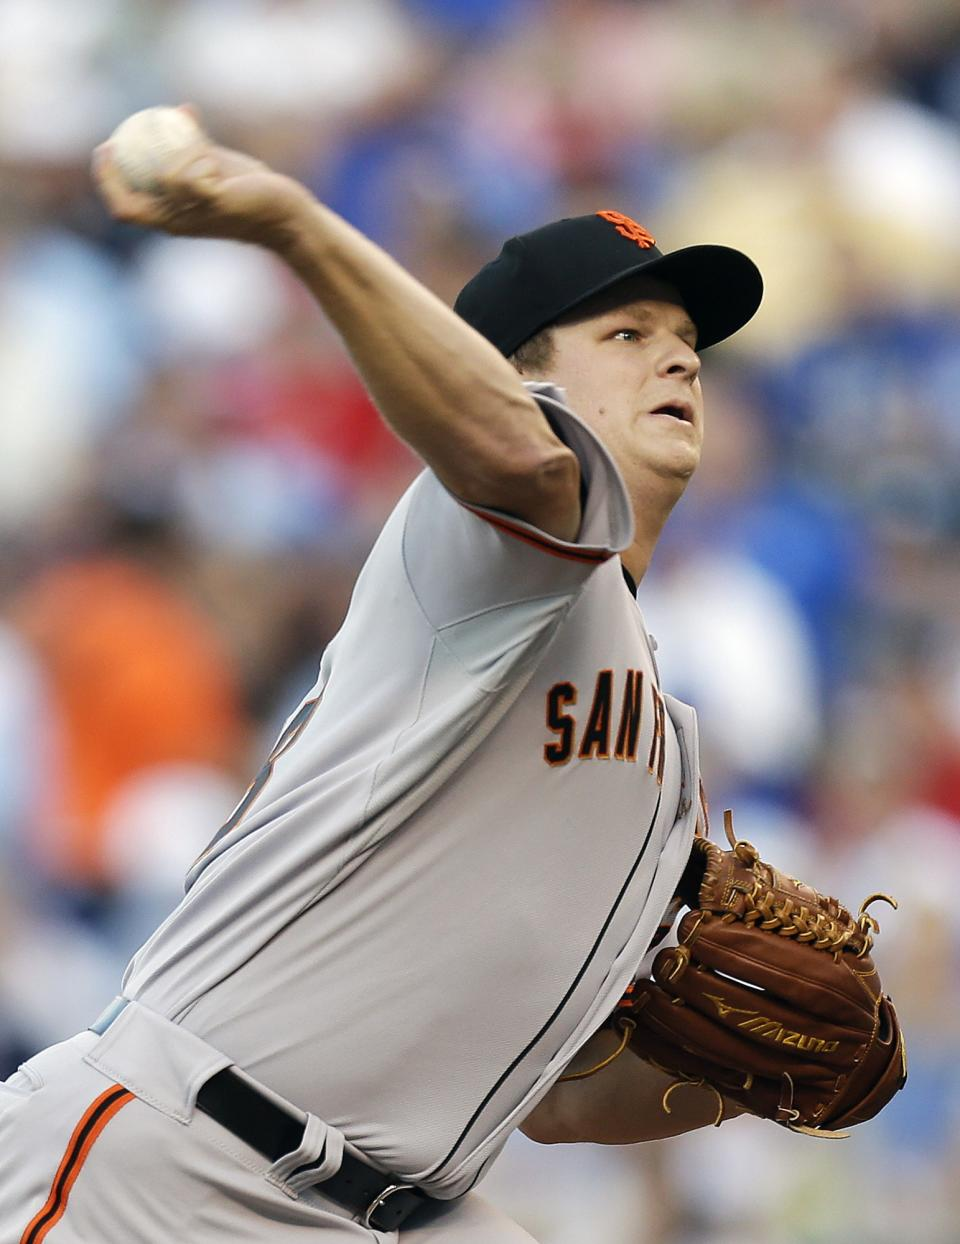 National League's Matt Cain, of the San Francisco Giants, pitches during the first inning of the MLB All-Star baseball game Tuesday, July 10, 2012, in Kansas City, Mo. (AP Photo/Jeff Roberson)